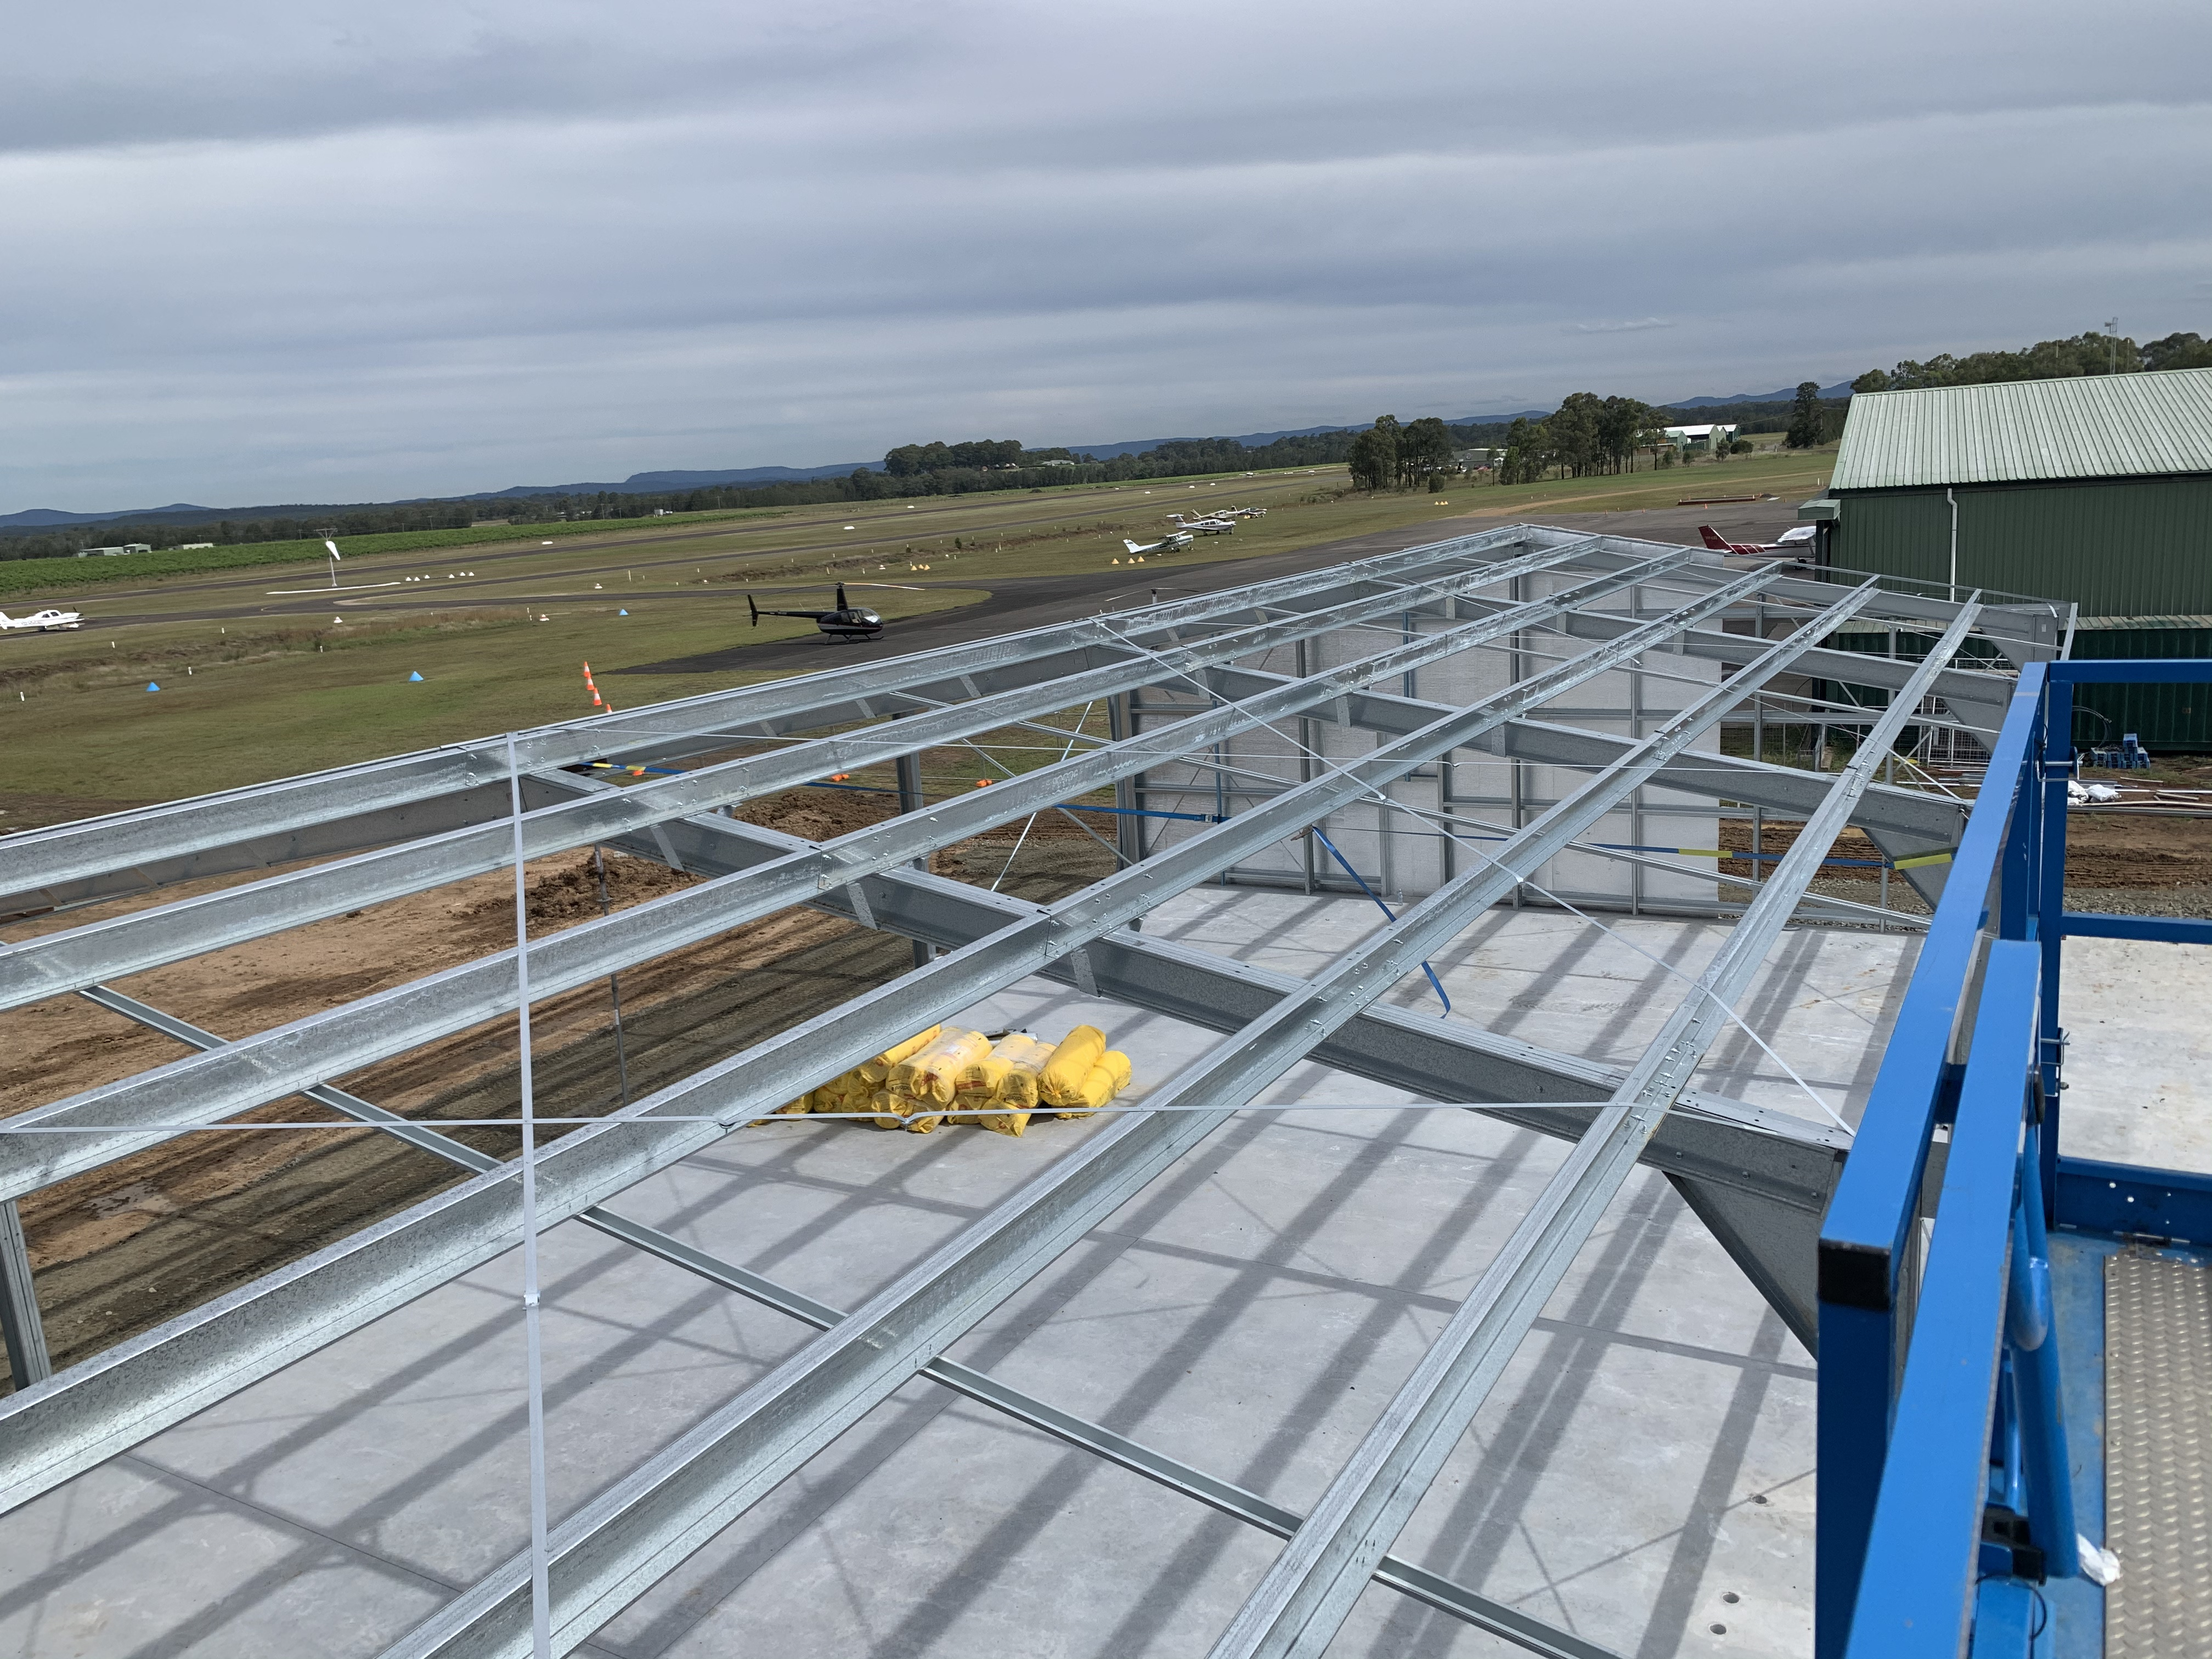 Commercial shed for new Hangar at Cessnock airport